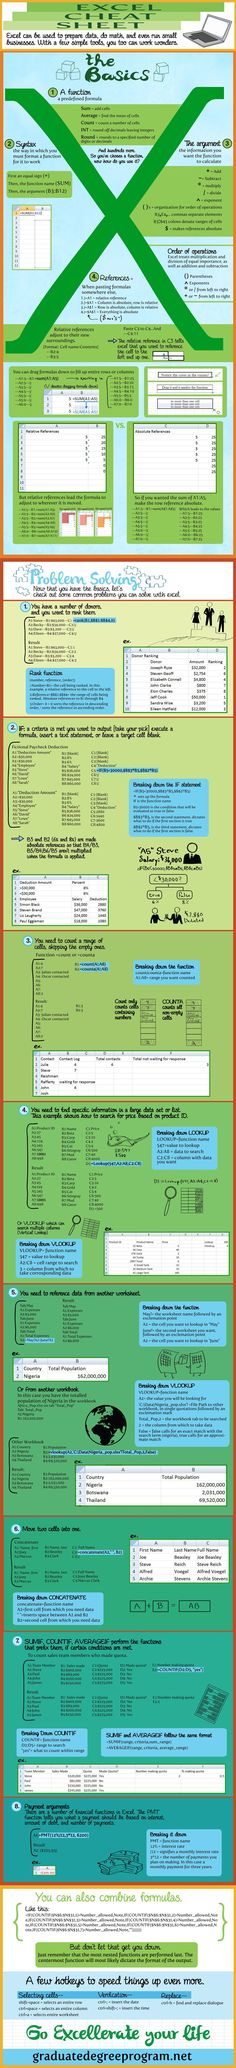 Ediblewildsus  Seductive Microsoft Excel Microsoft And Cheat Sheets On Pinterest With Interesting Excel Cheat Httpgraduatedegreeprogramnetexcelcheats With Amazing Excel Nursing Home Also Excel Formula Bar Missing In Addition Excel Addin And What Is The Average Function In Excel As Well As How To Compare To Columns In Excel Additionally  Hyundai Excel From Pinterestcom With Ediblewildsus  Interesting Microsoft Excel Microsoft And Cheat Sheets On Pinterest With Amazing Excel Cheat Httpgraduatedegreeprogramnetexcelcheats And Seductive Excel Nursing Home Also Excel Formula Bar Missing In Addition Excel Addin From Pinterestcom